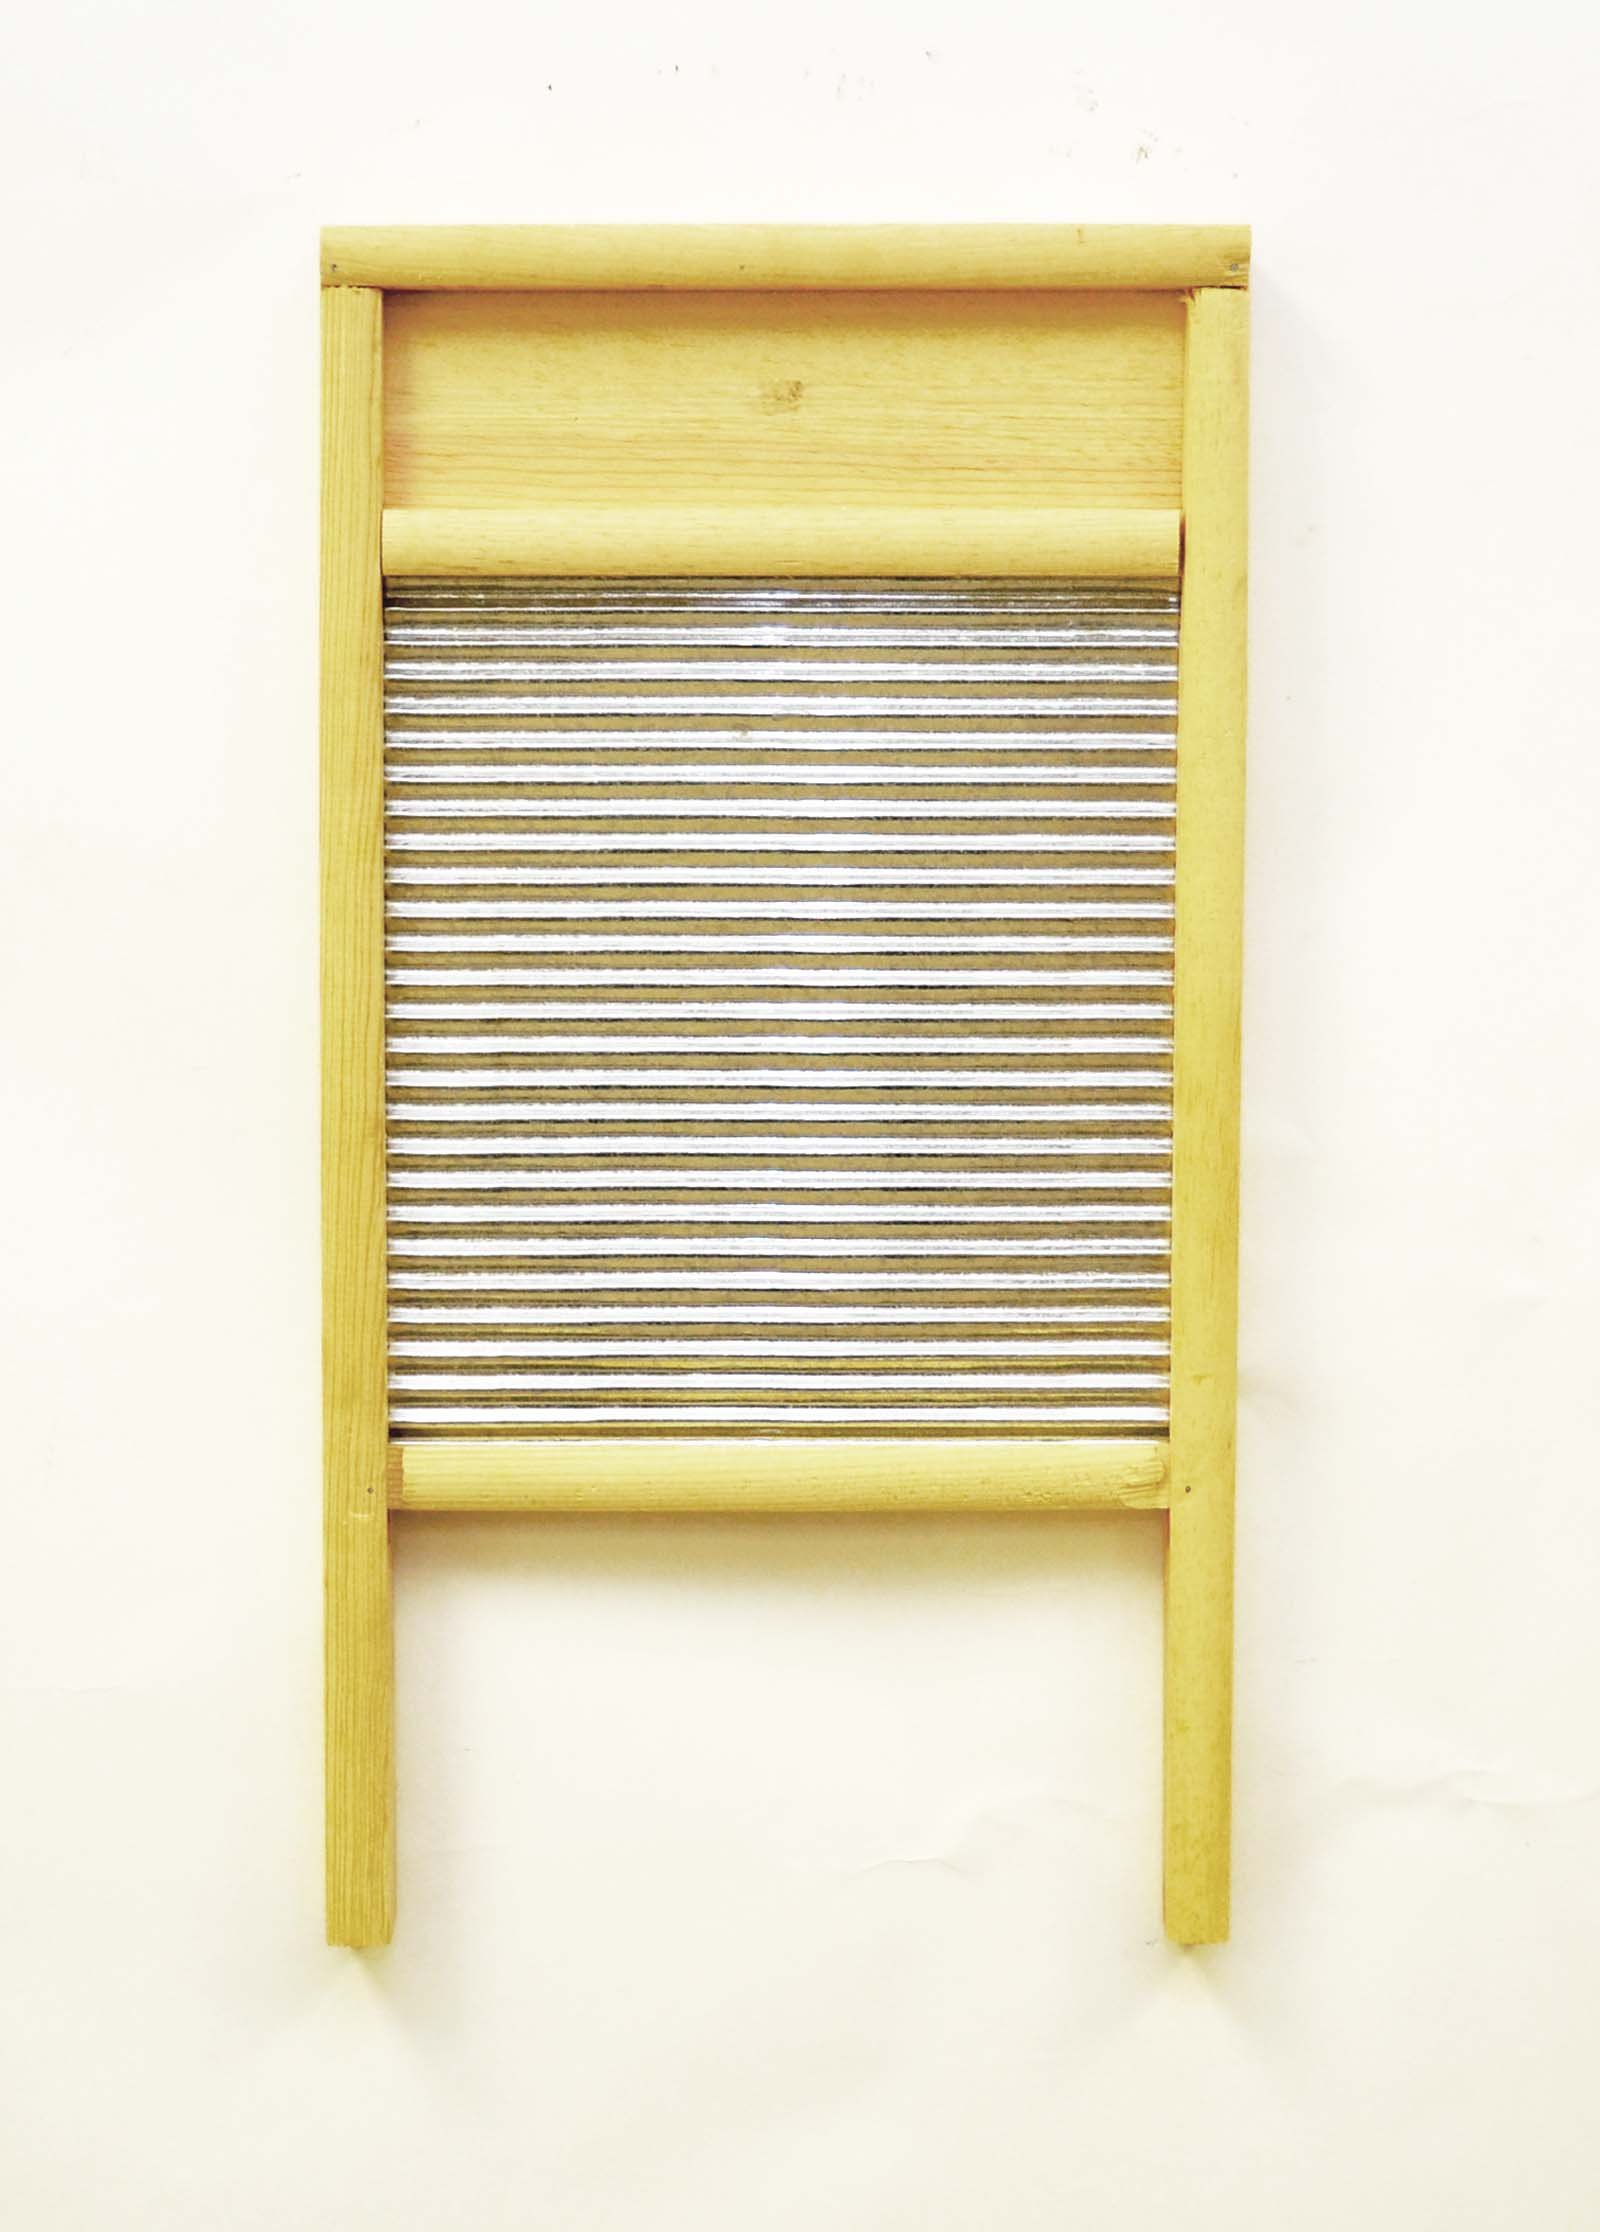 Large Washboard with Tin-23.5 Inches High X 12.5 Inches Wide